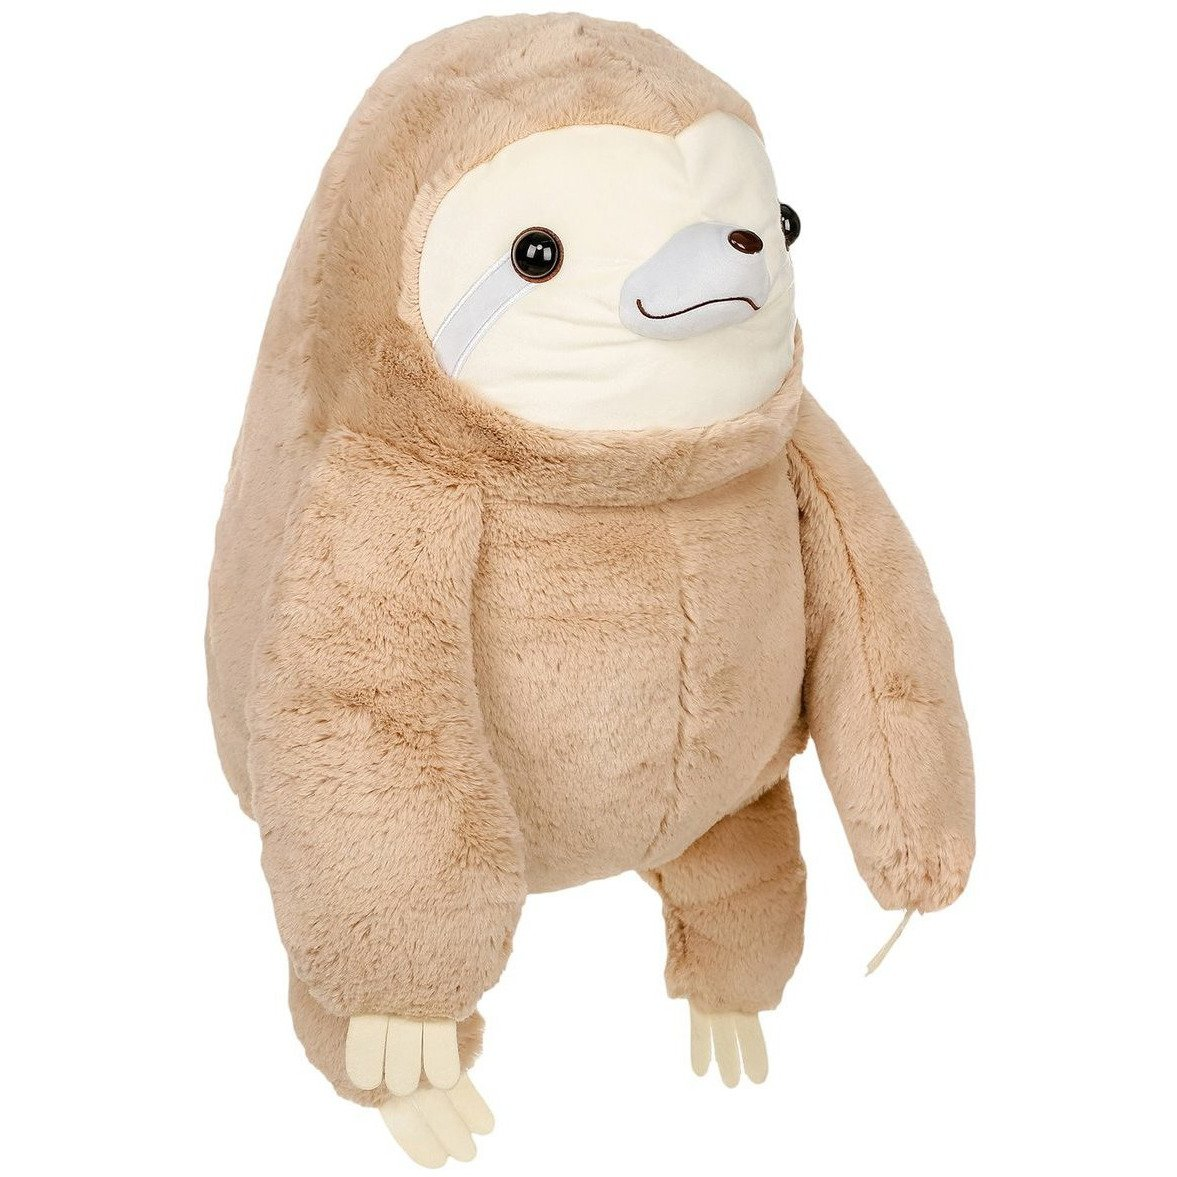 Amuse Sloth Plush 20 Jungle And Wild Animals